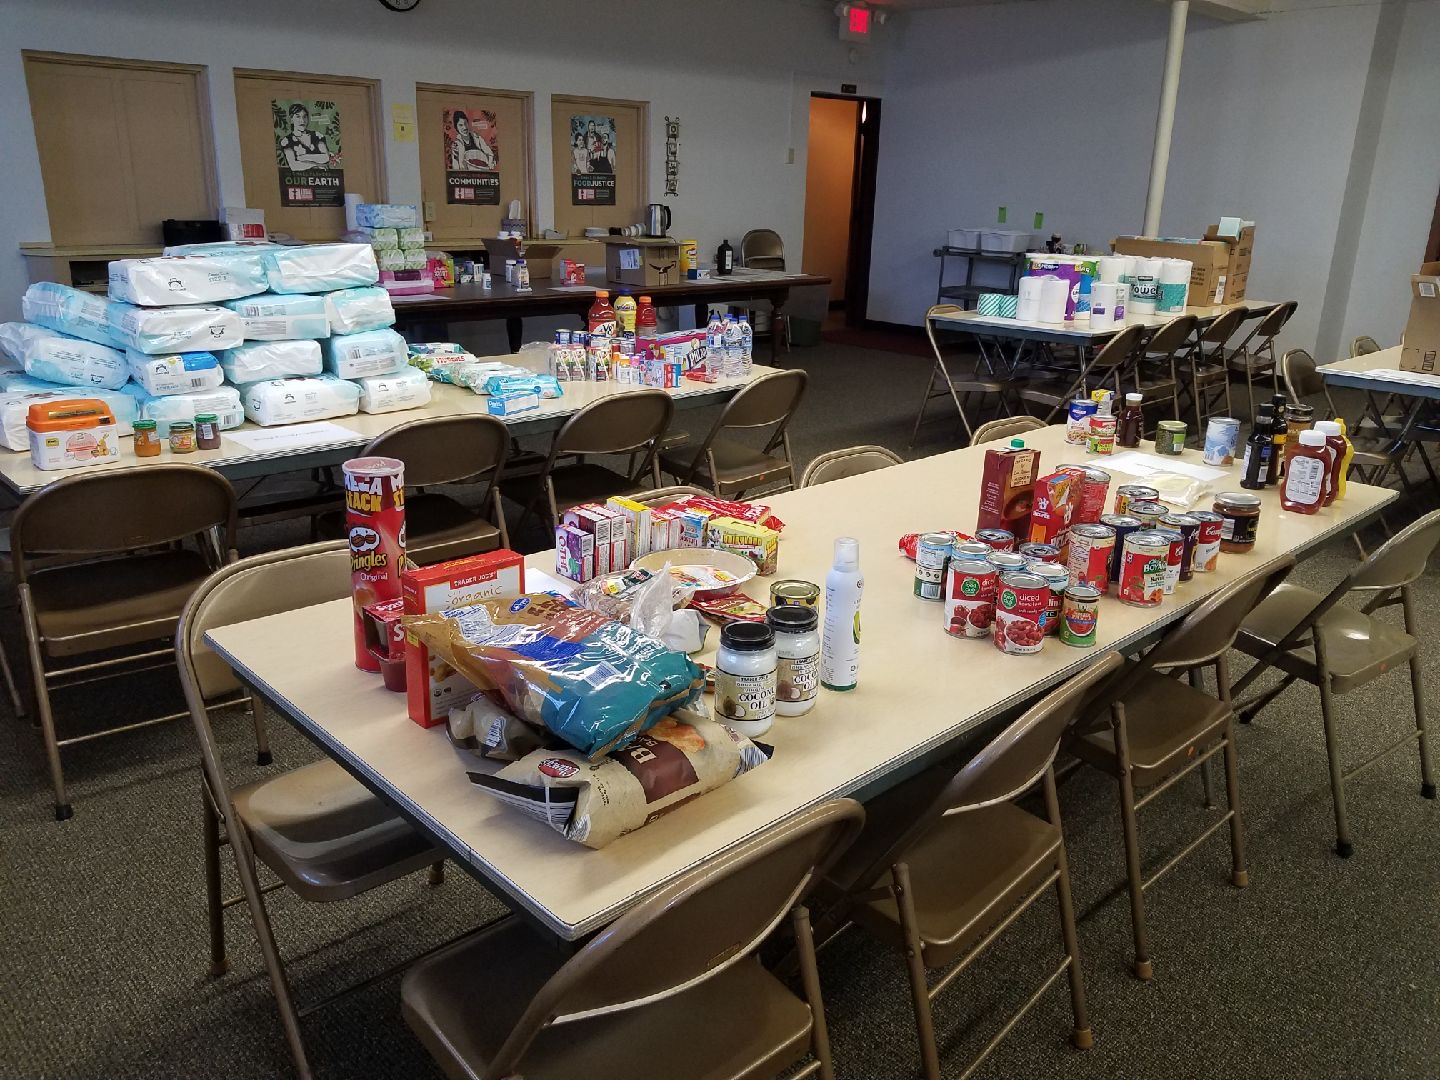 Community Heroes: Mutual aid group steps it up to help neighbors in need